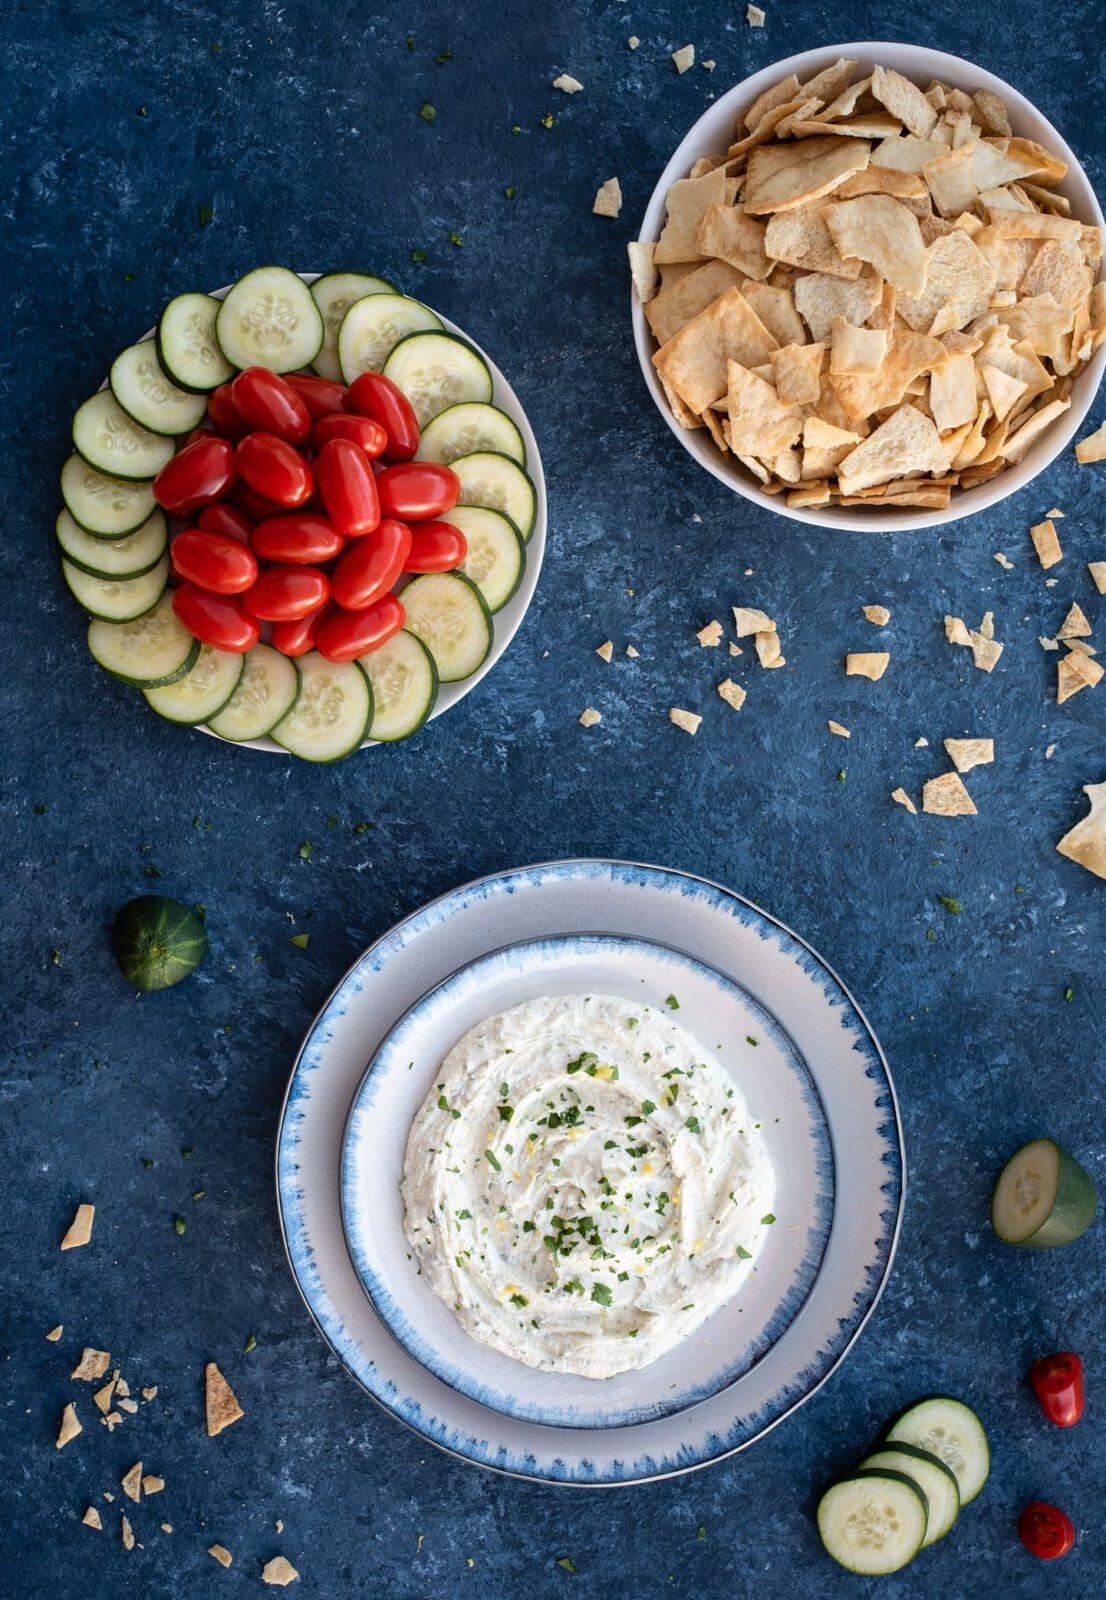 Picture of whipped feta with herbs, crackers, and vegetables